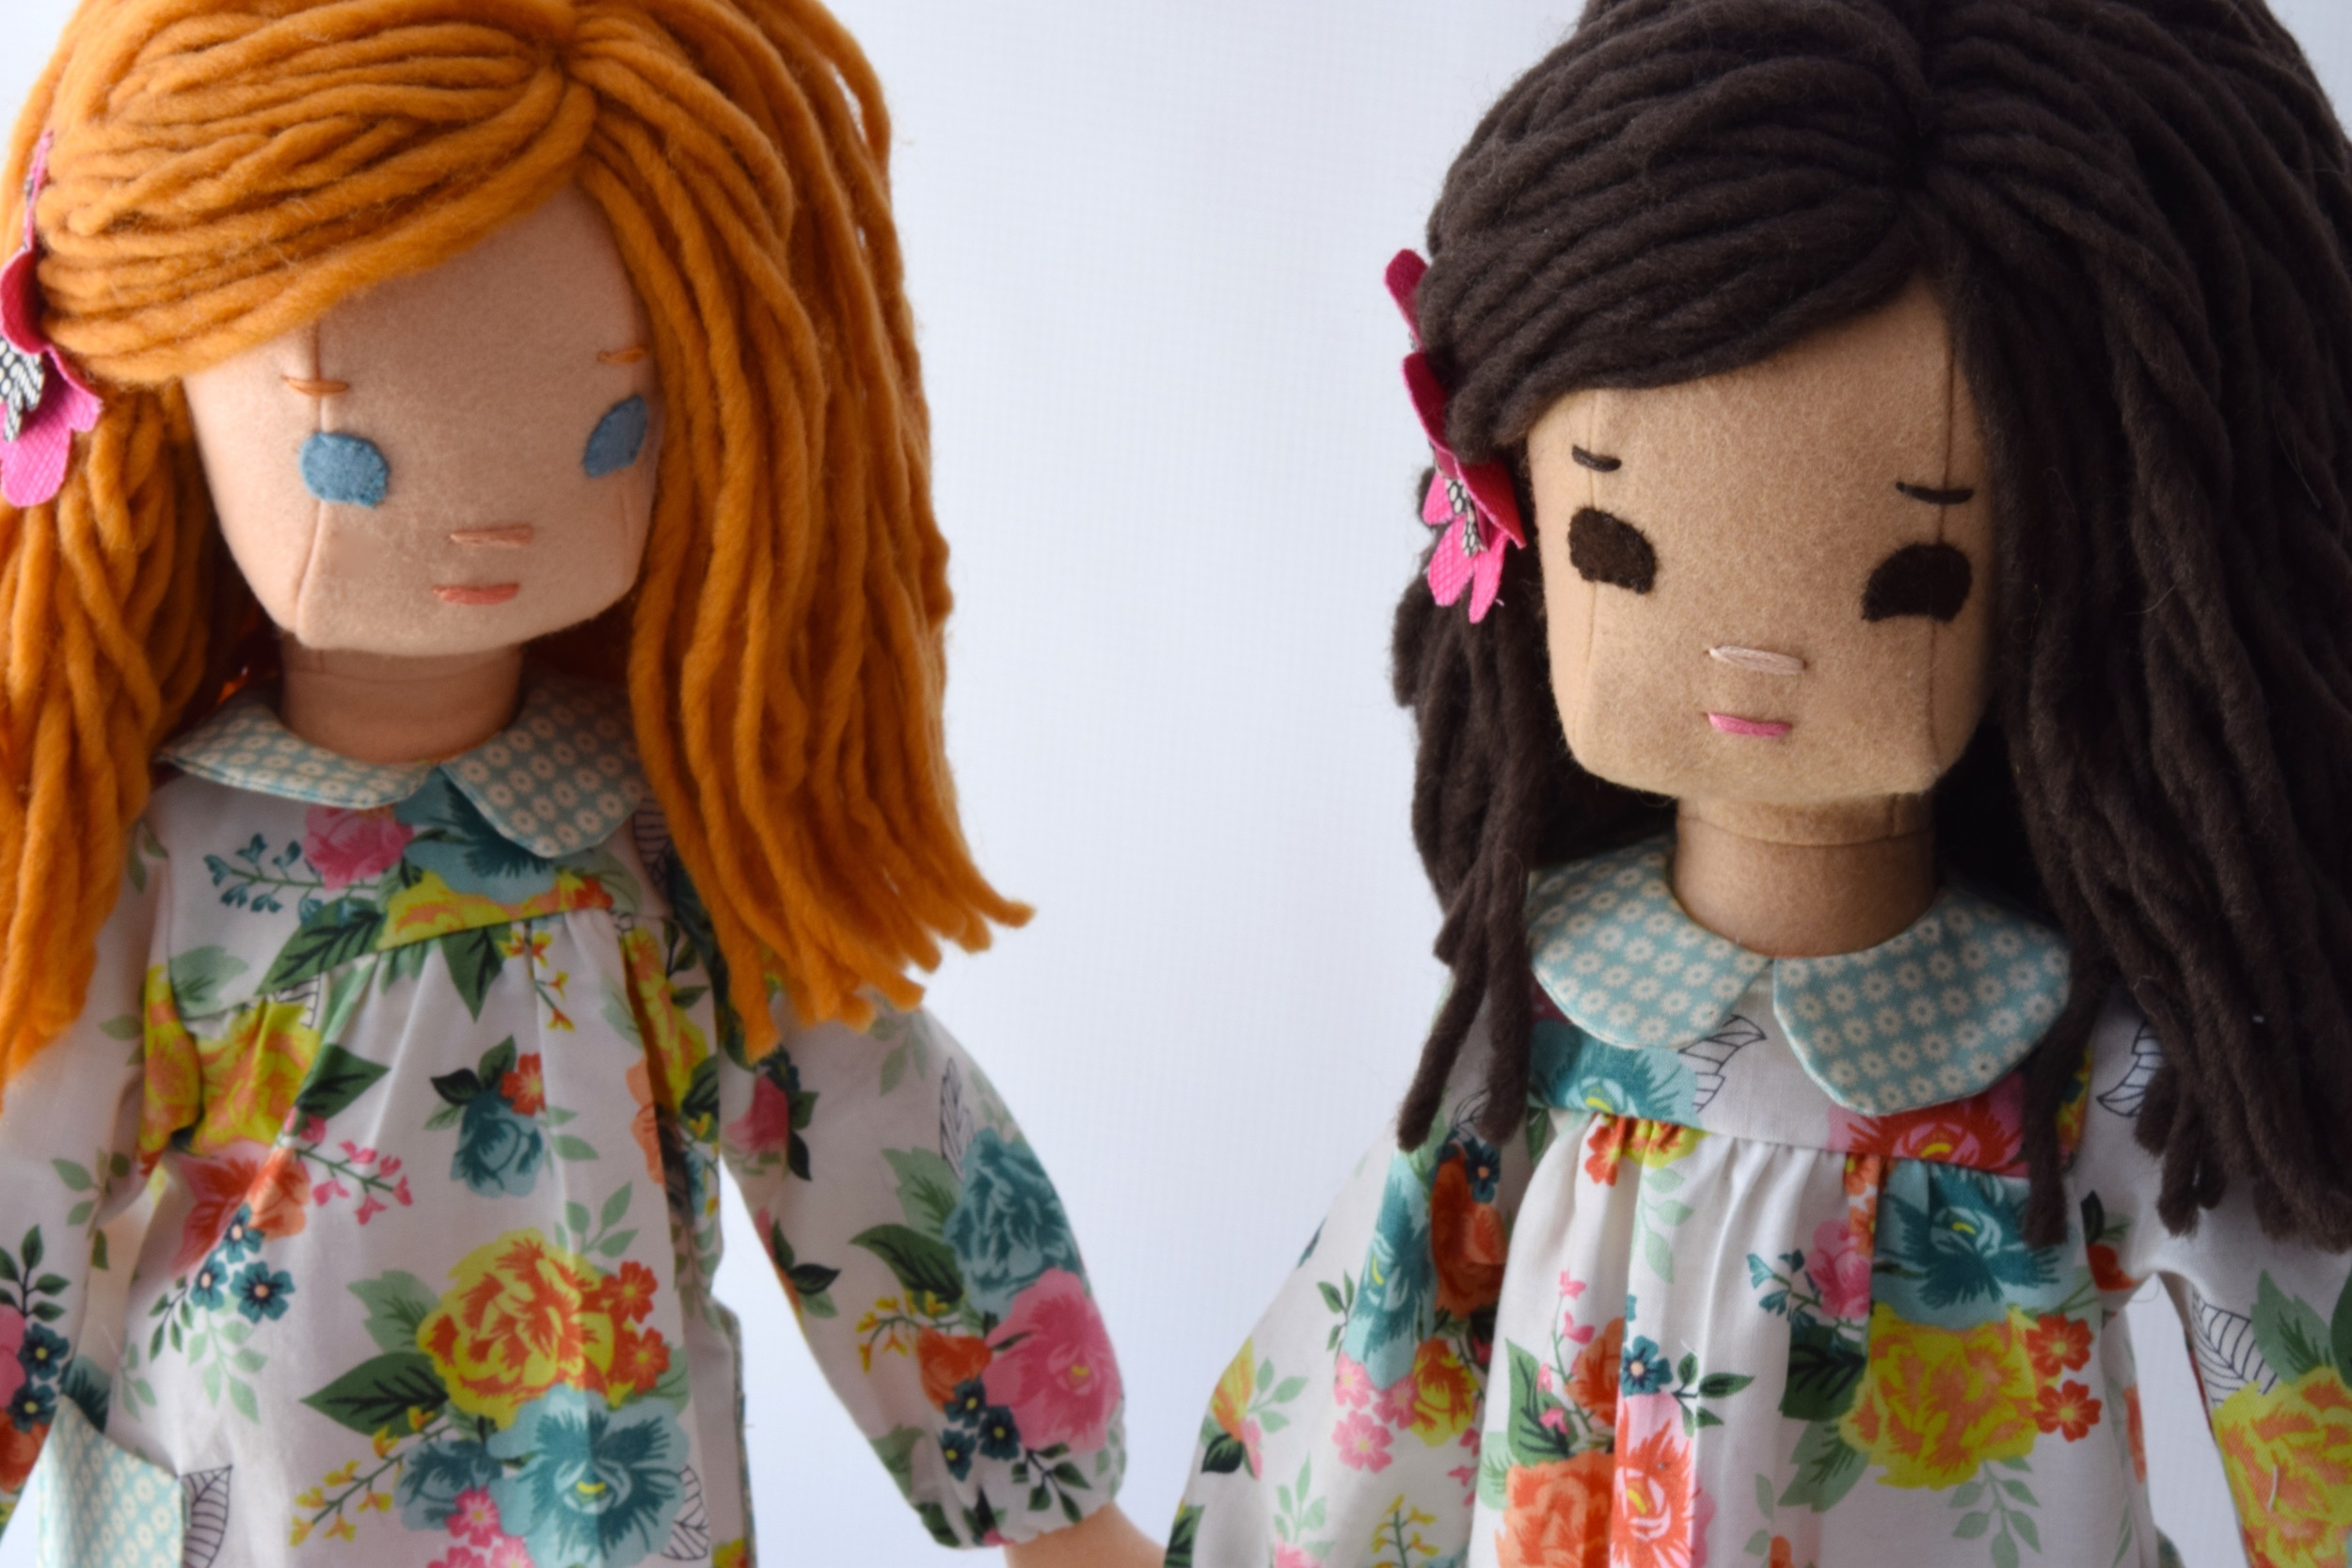 Two dolls with their spring dresses